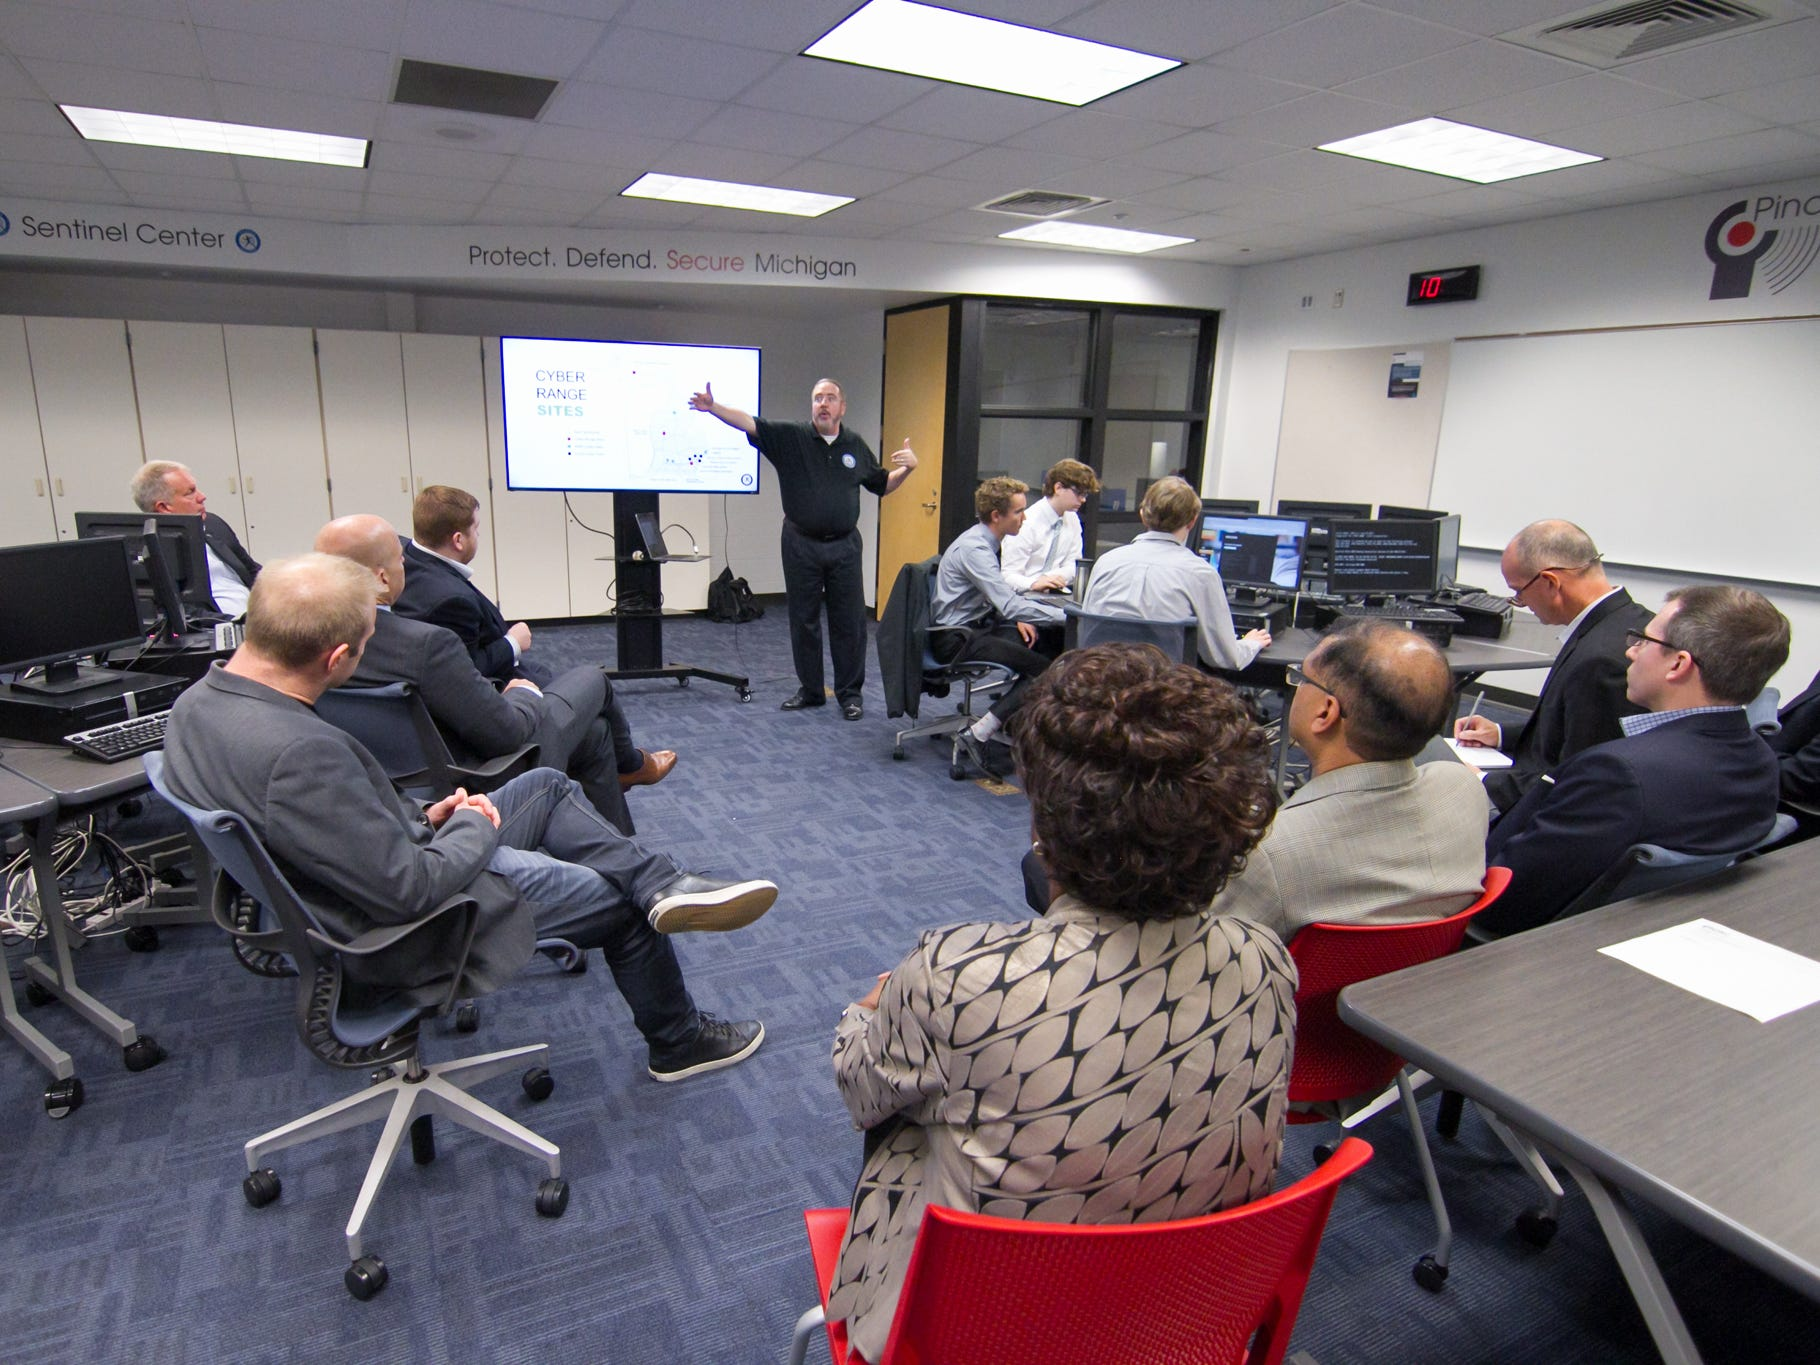 Joe Adams outlines the use of the Cyber Range capabilities for learning at a tour of the Pinckney Cyber Training Institute by IBM executives Tuesday, Oct. 9, 2018.